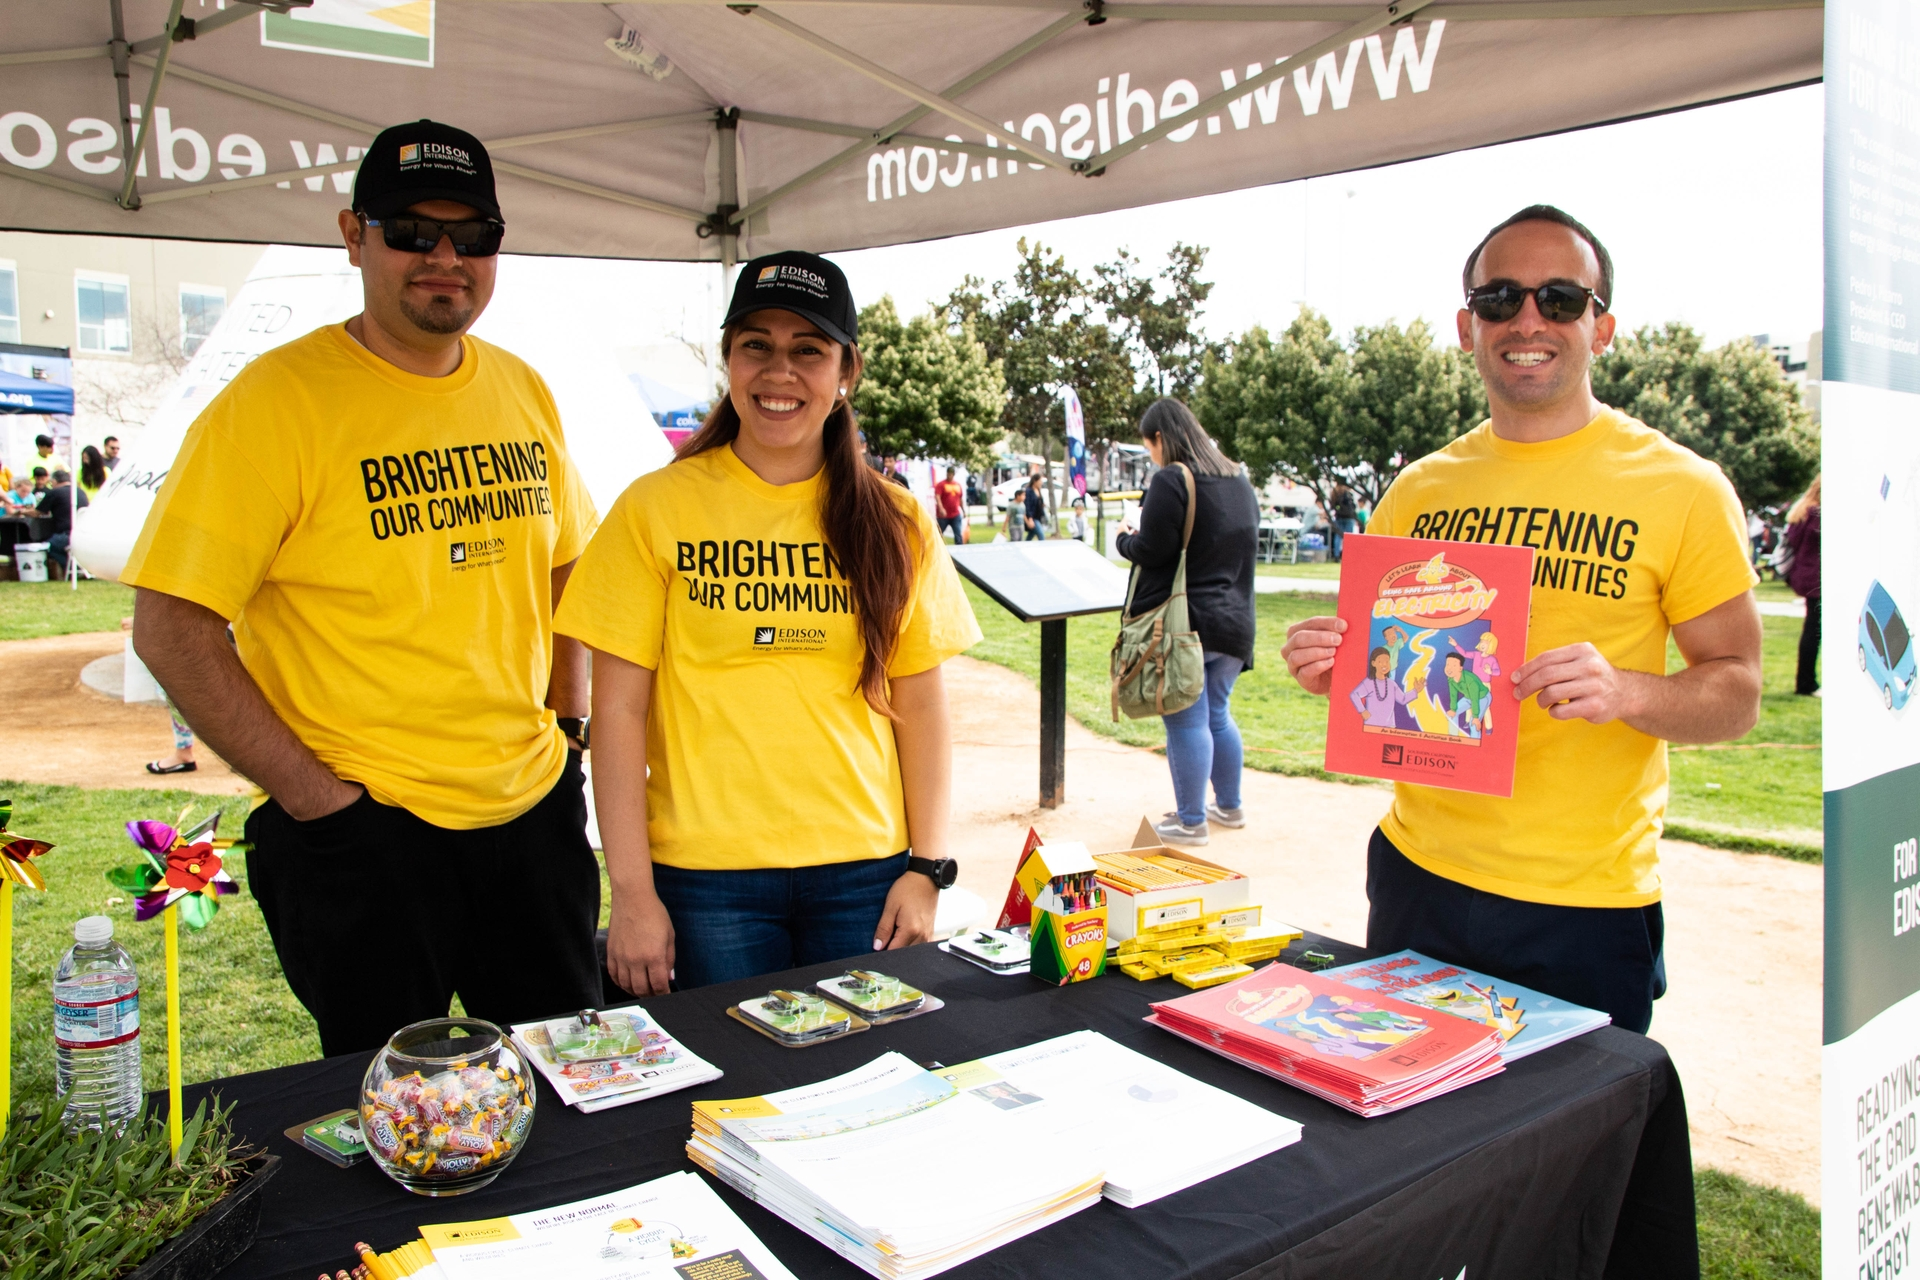 Edison International volunteers handed out coloring books on public safety.